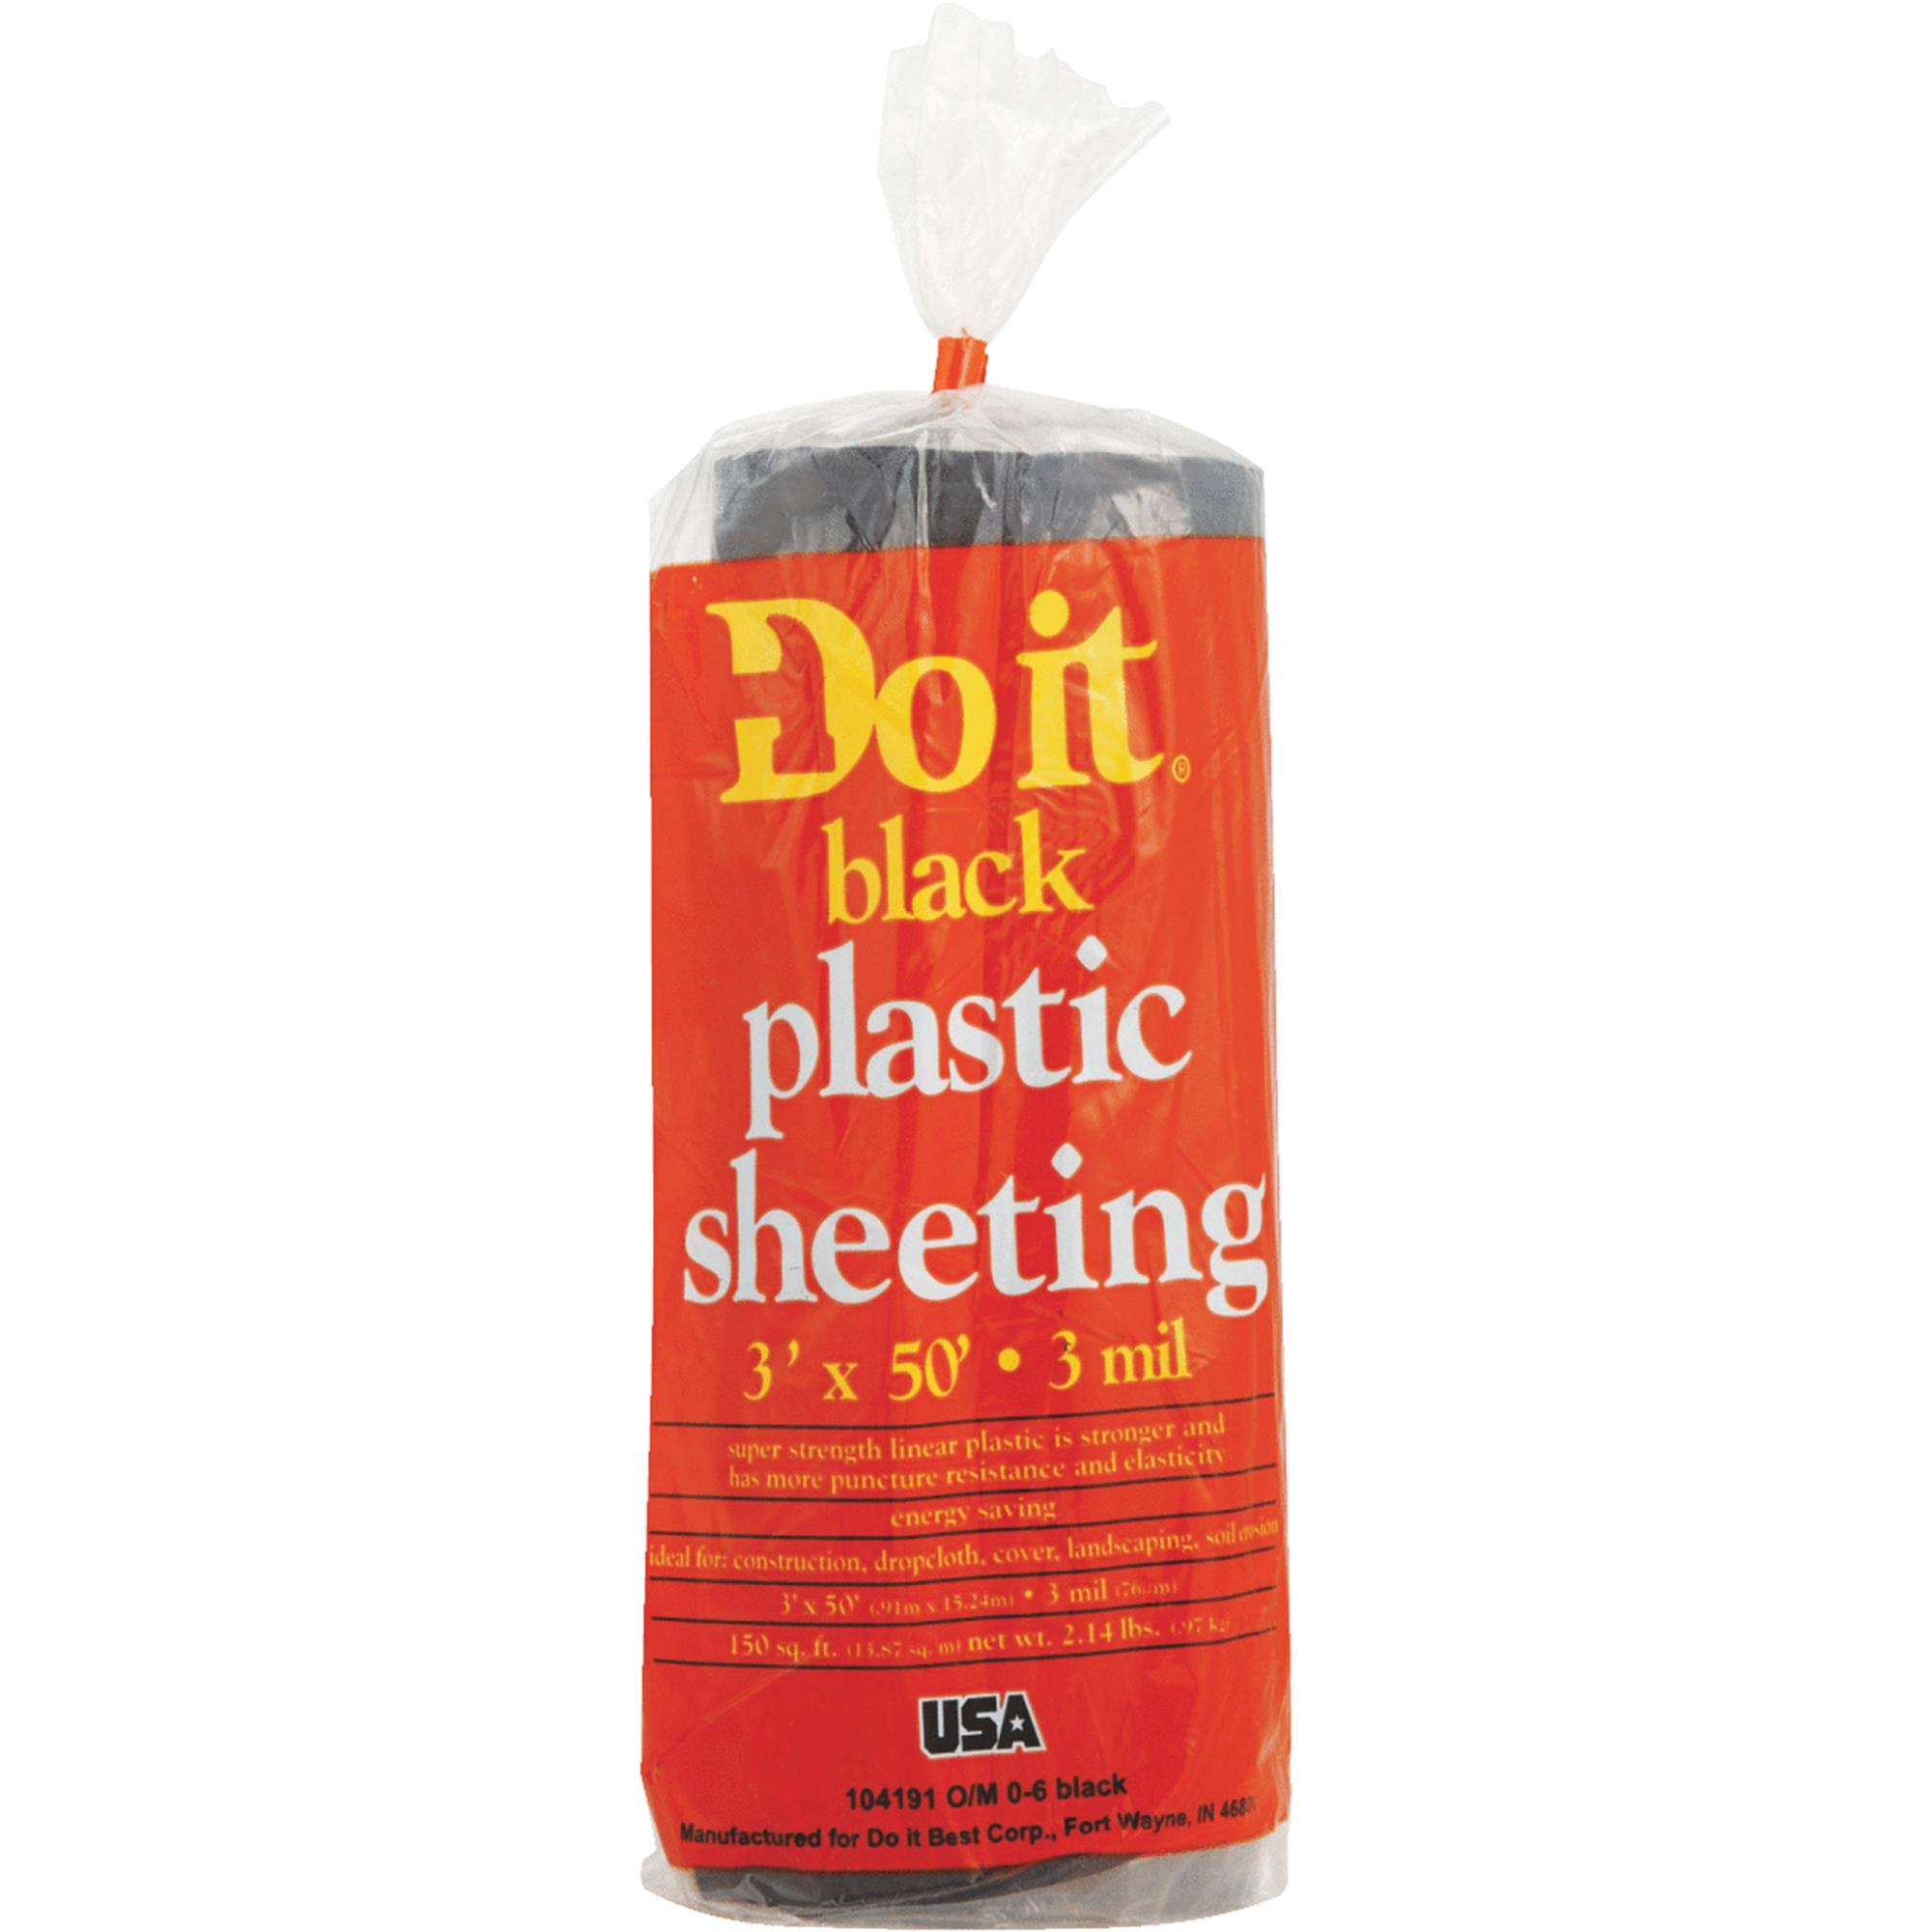 Do It Plastic Sheeting - 3' x 50', 3mil, Black